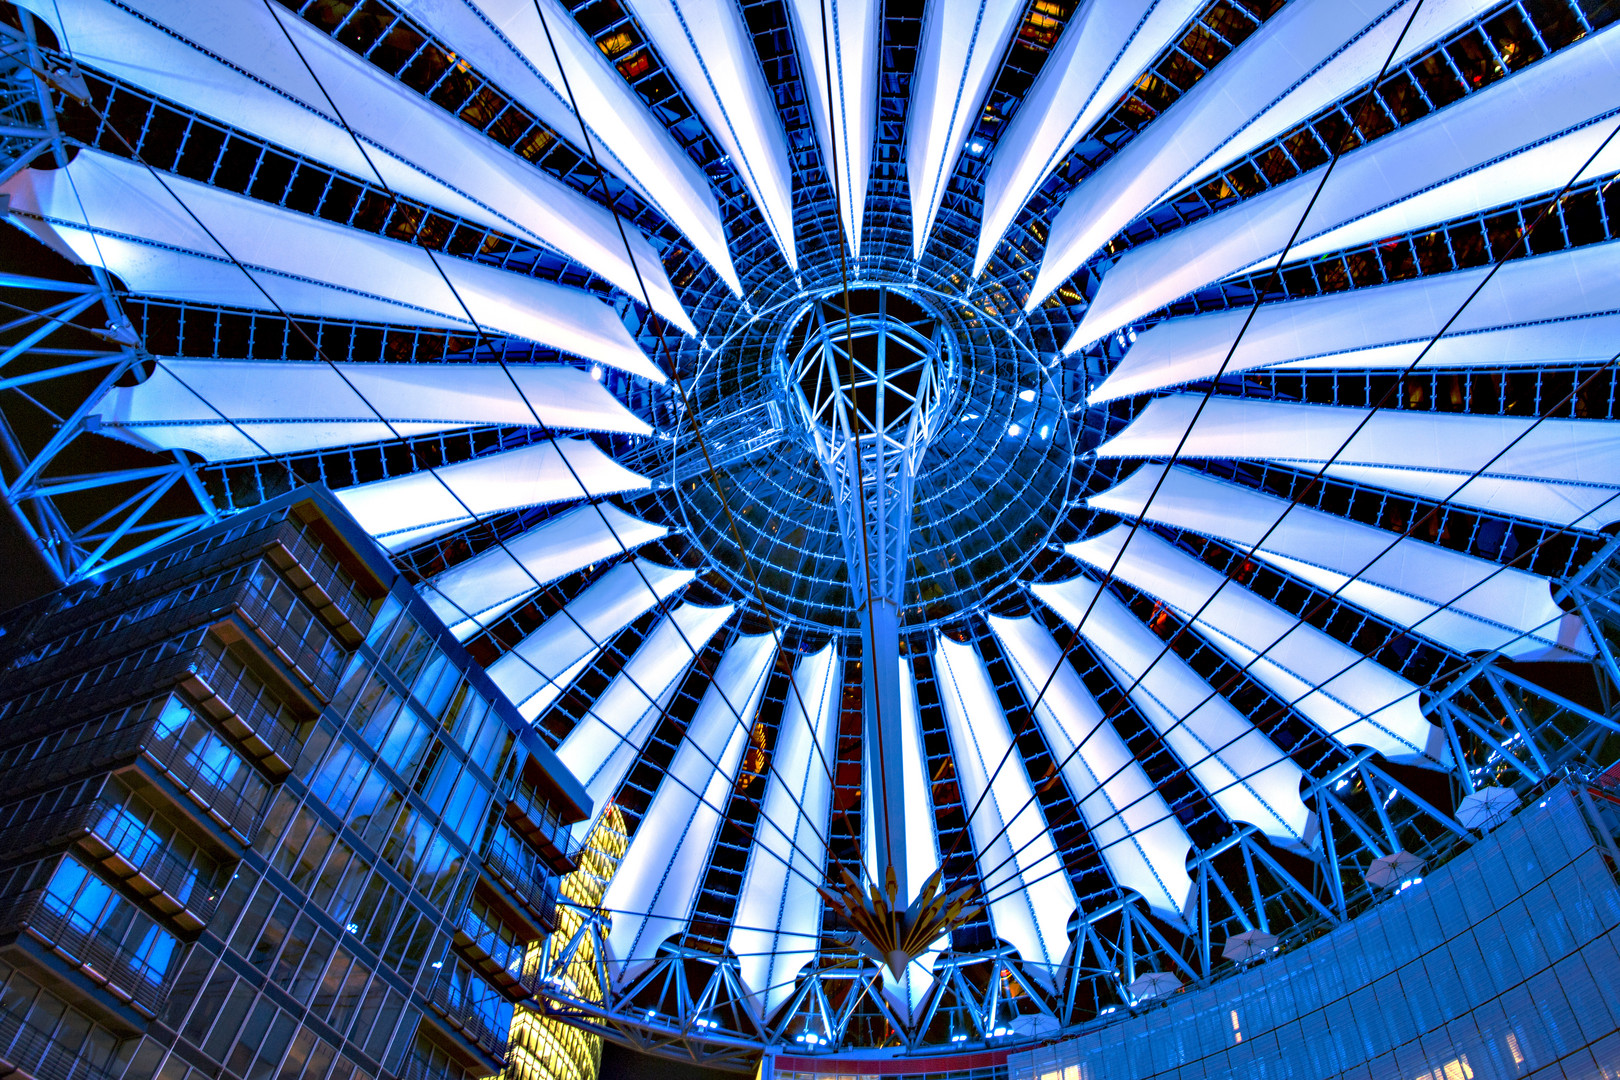 Sony-Center, Berlin